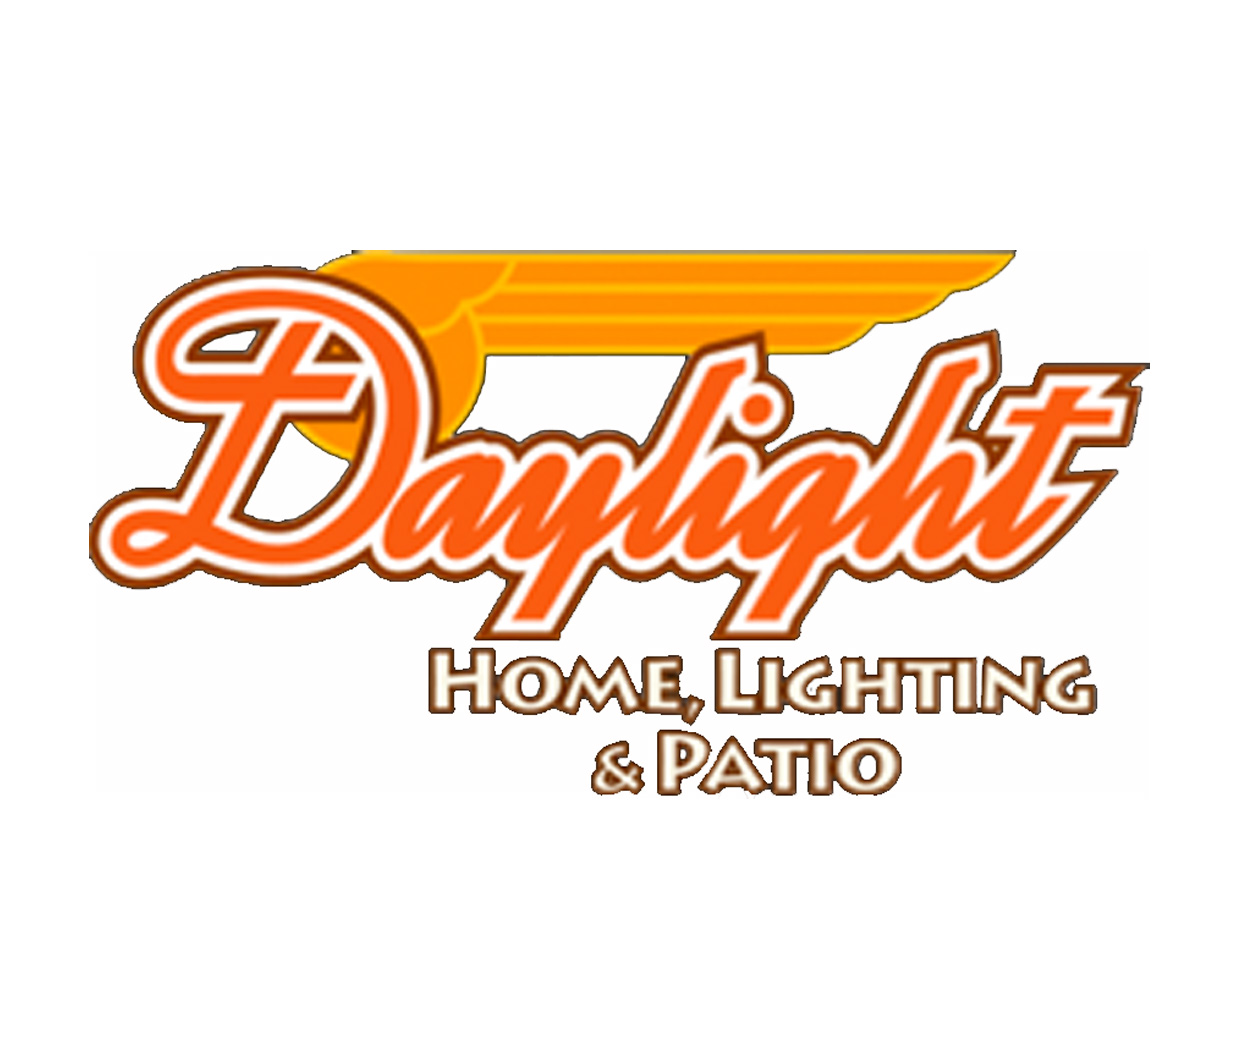 daylight home